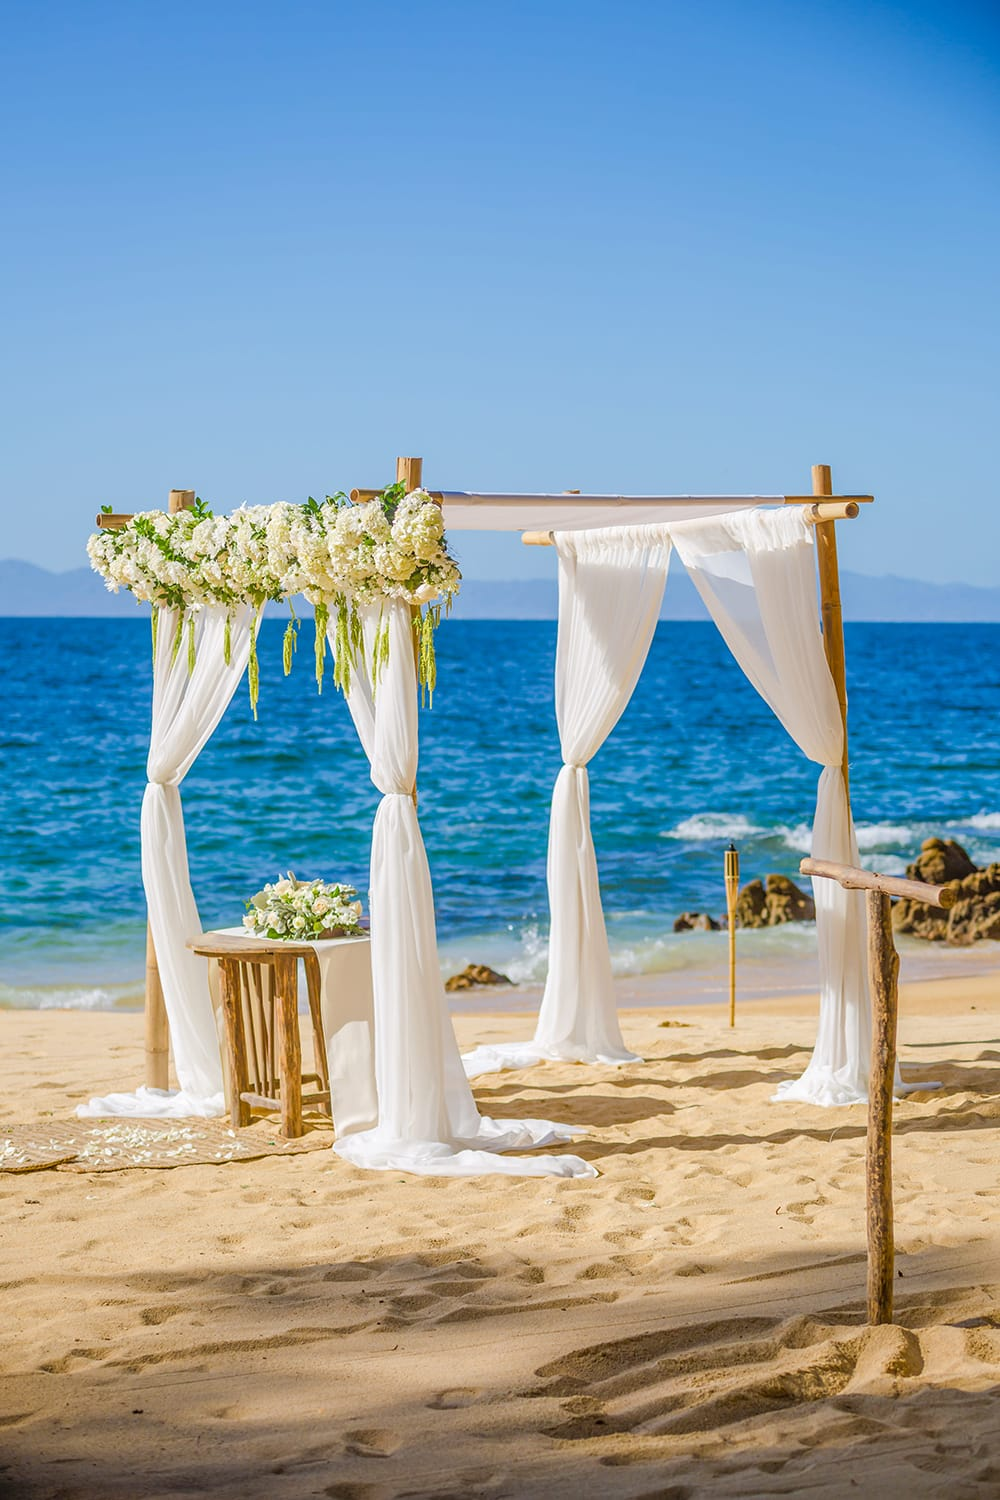 Wedding chuppah set up for outdoor beach wedding with bohemian flower and fabric design by Adventure Weddings